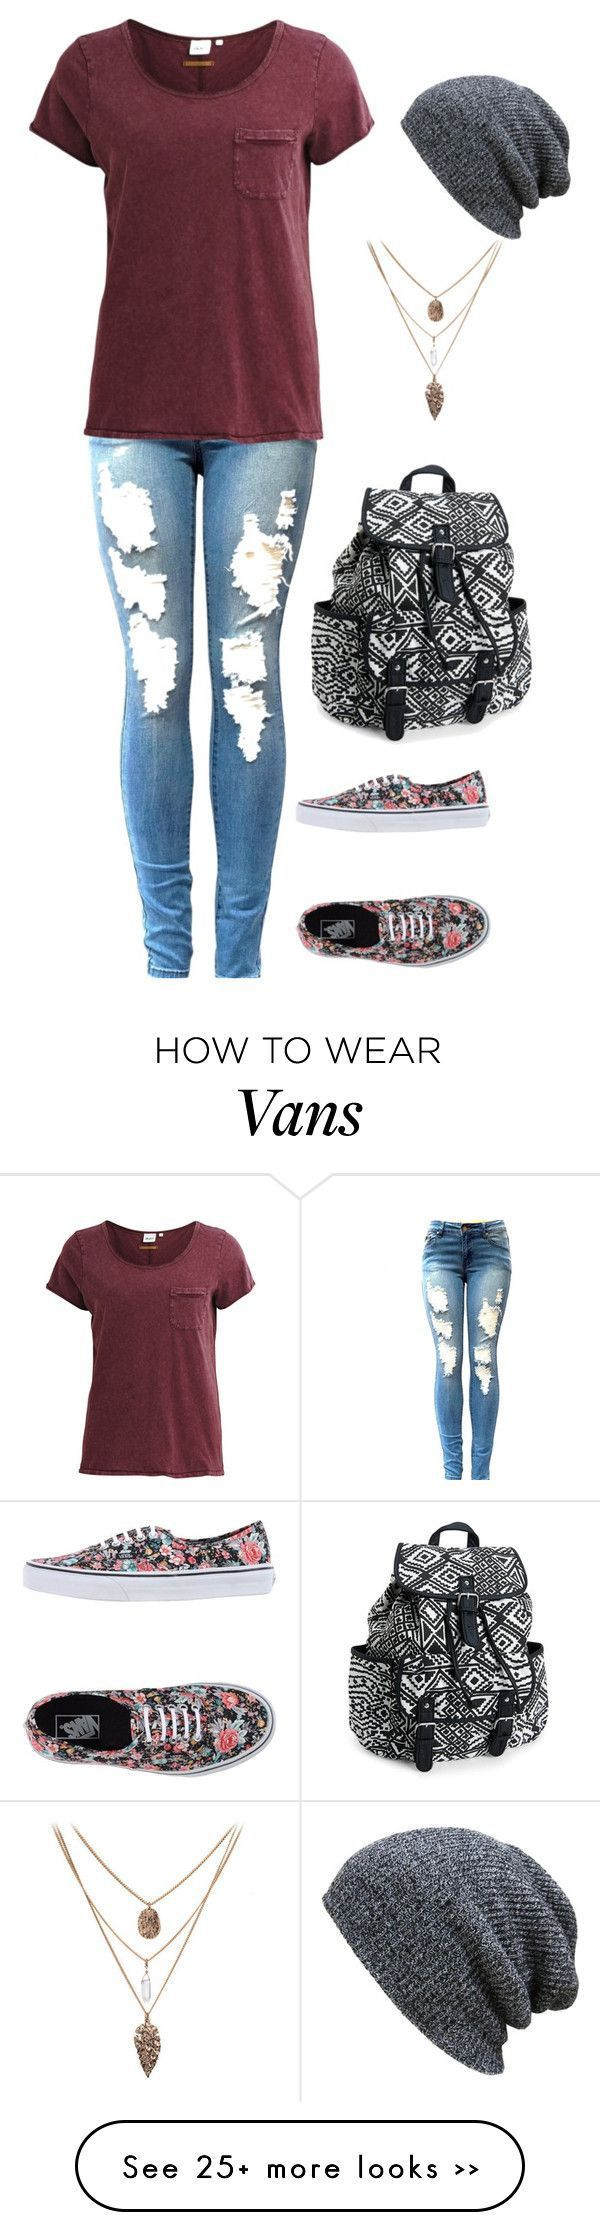 Create your own designs amp sell your design online shirts zazzle - Awesome Vans Sets By Http Www Redfashiontrends Us Teen